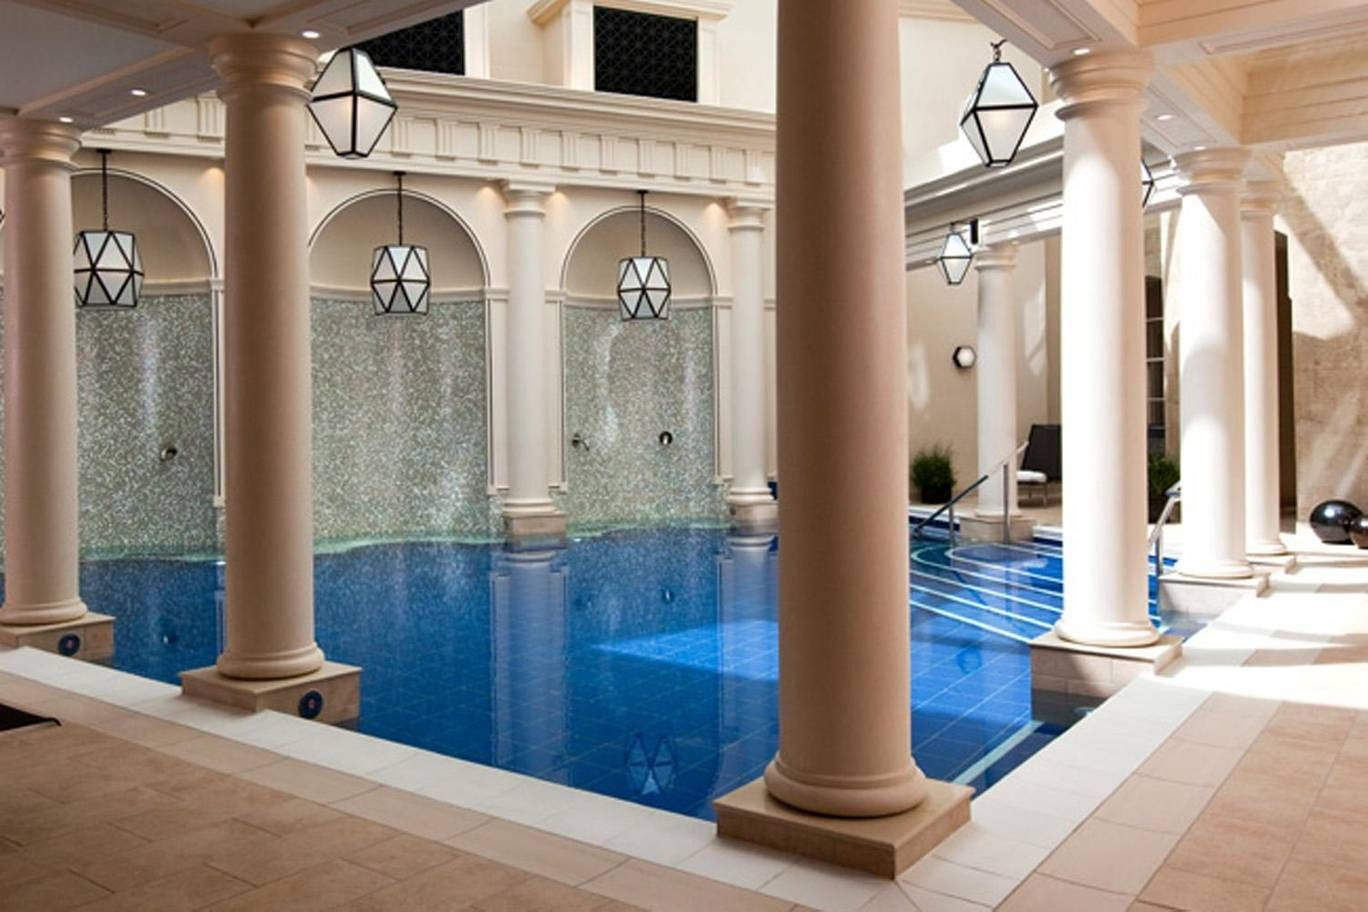 13 of the best country spas near London   London Evening ...